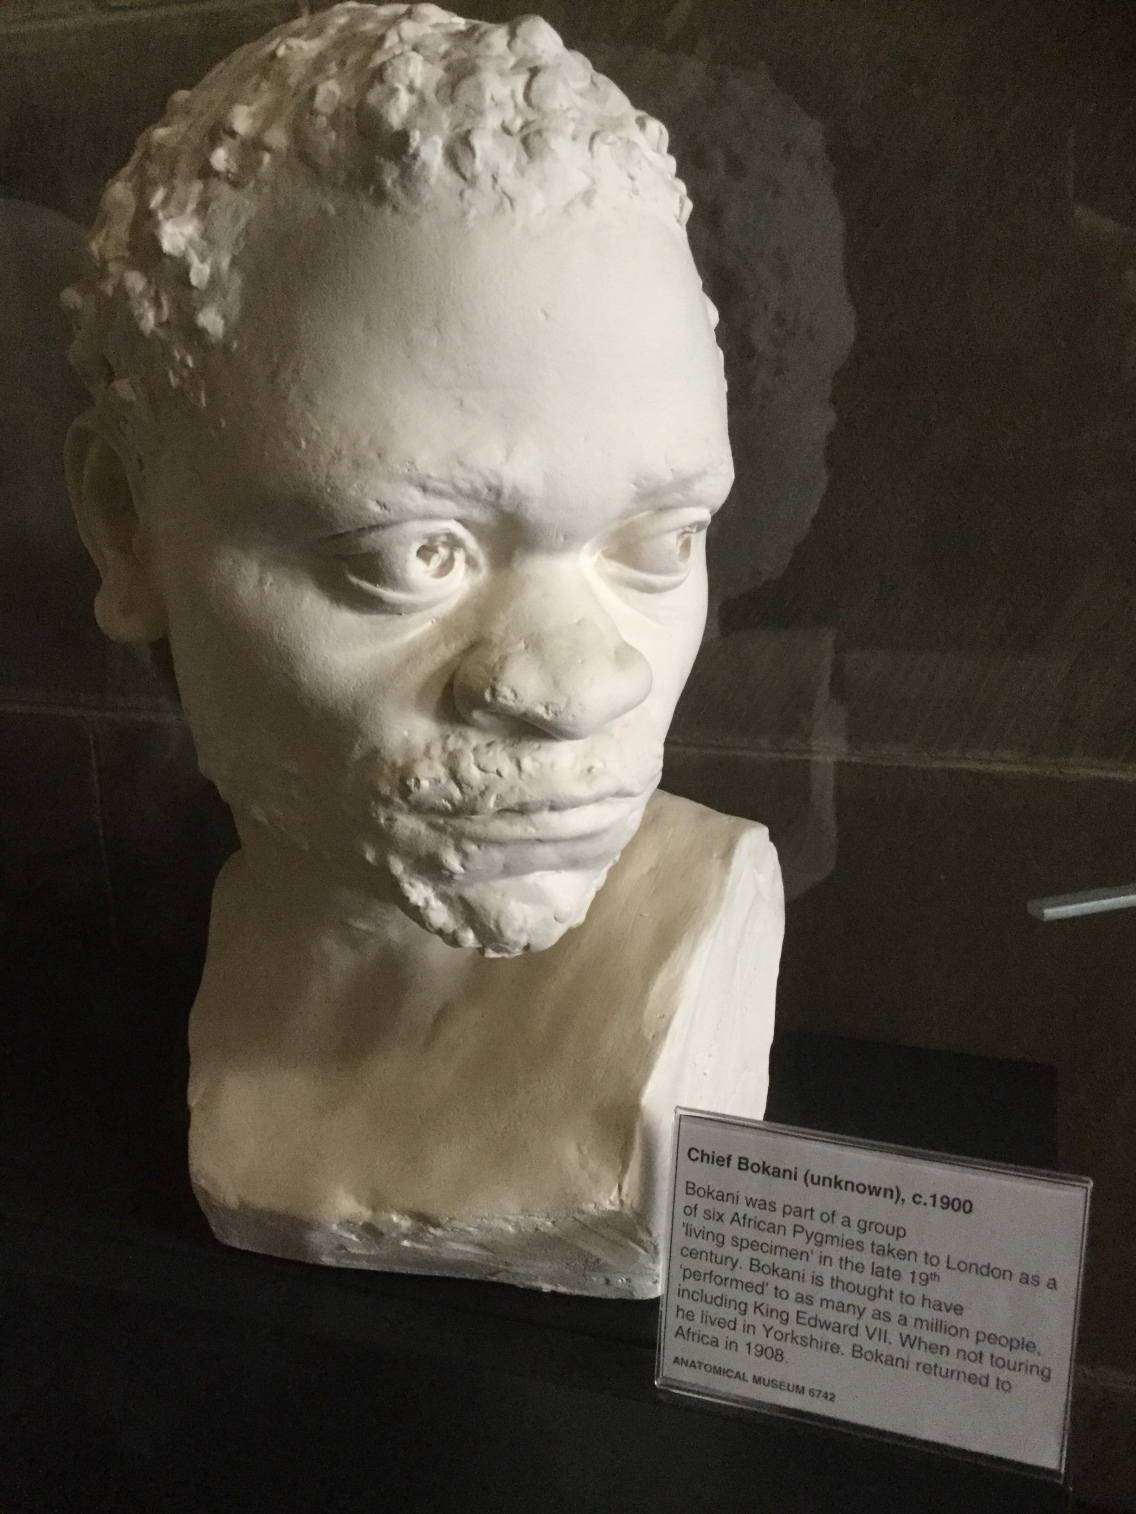 A portrait head of Chief Bokani in the Anatomical Museum collection, Old Medical School, University of Edinburgh, 2018 Amy Cools